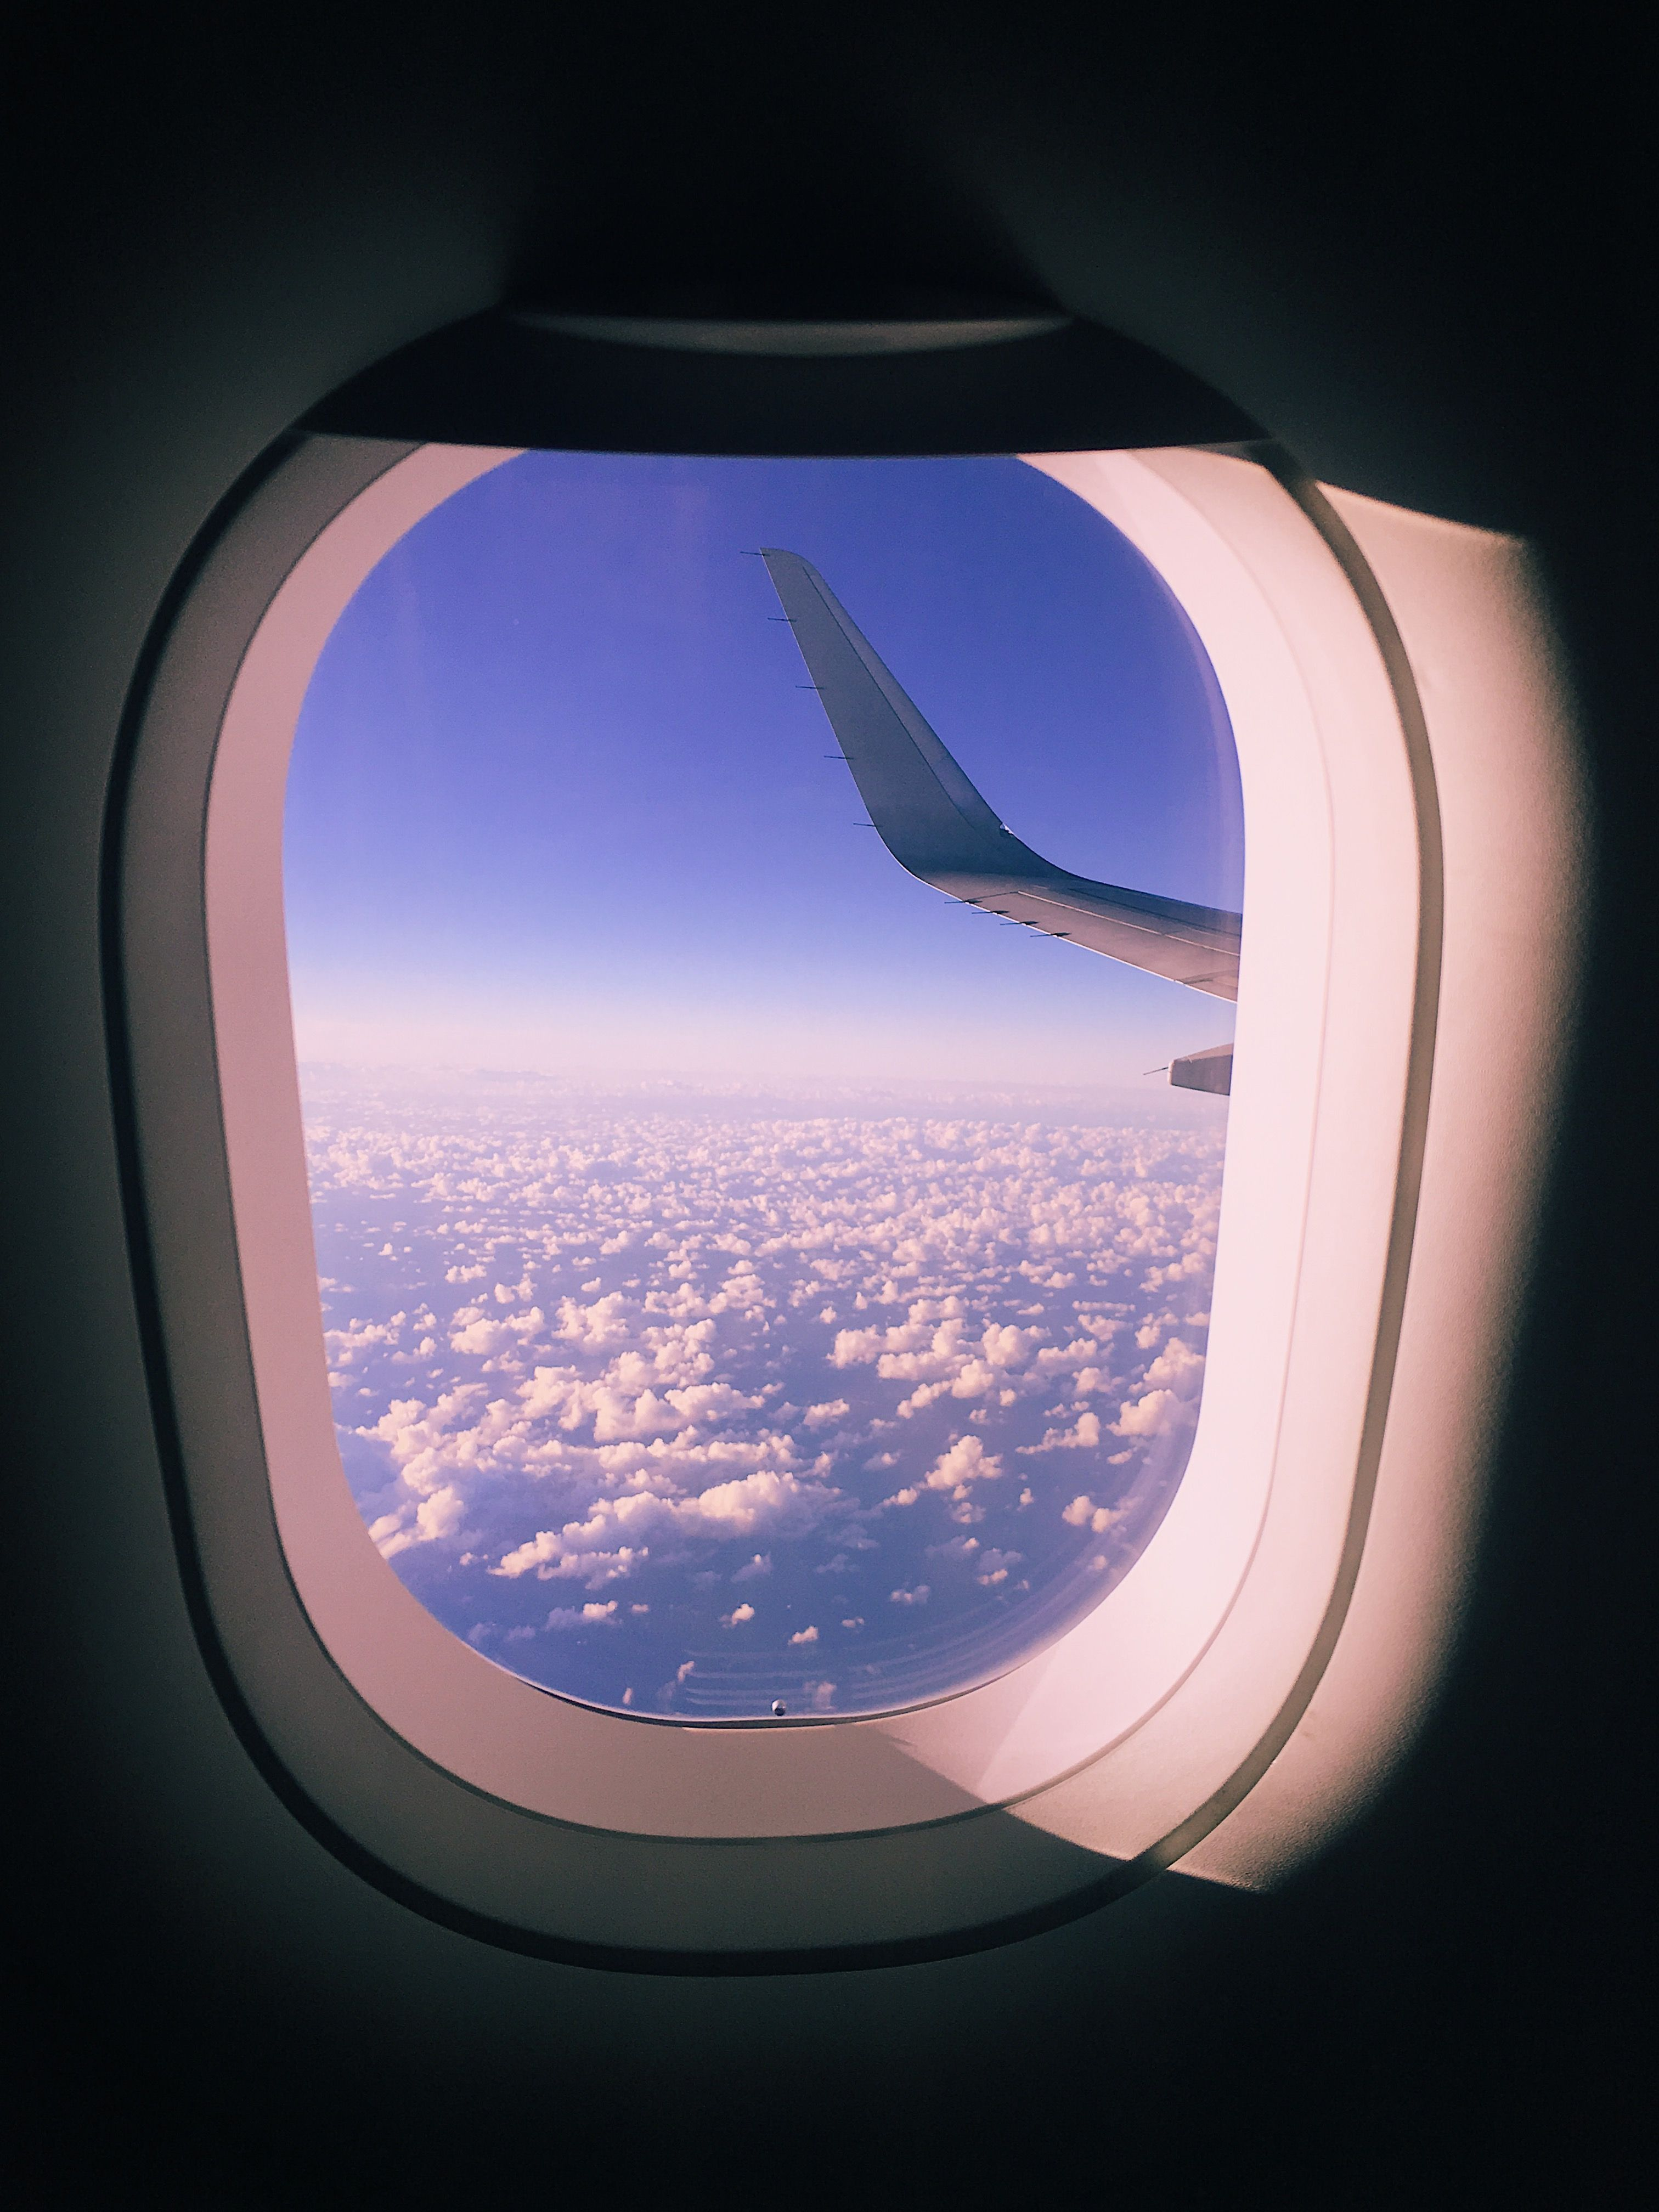 Insta Abs Shaw Travel Aesthetic Vsco Pictures Airplane Window